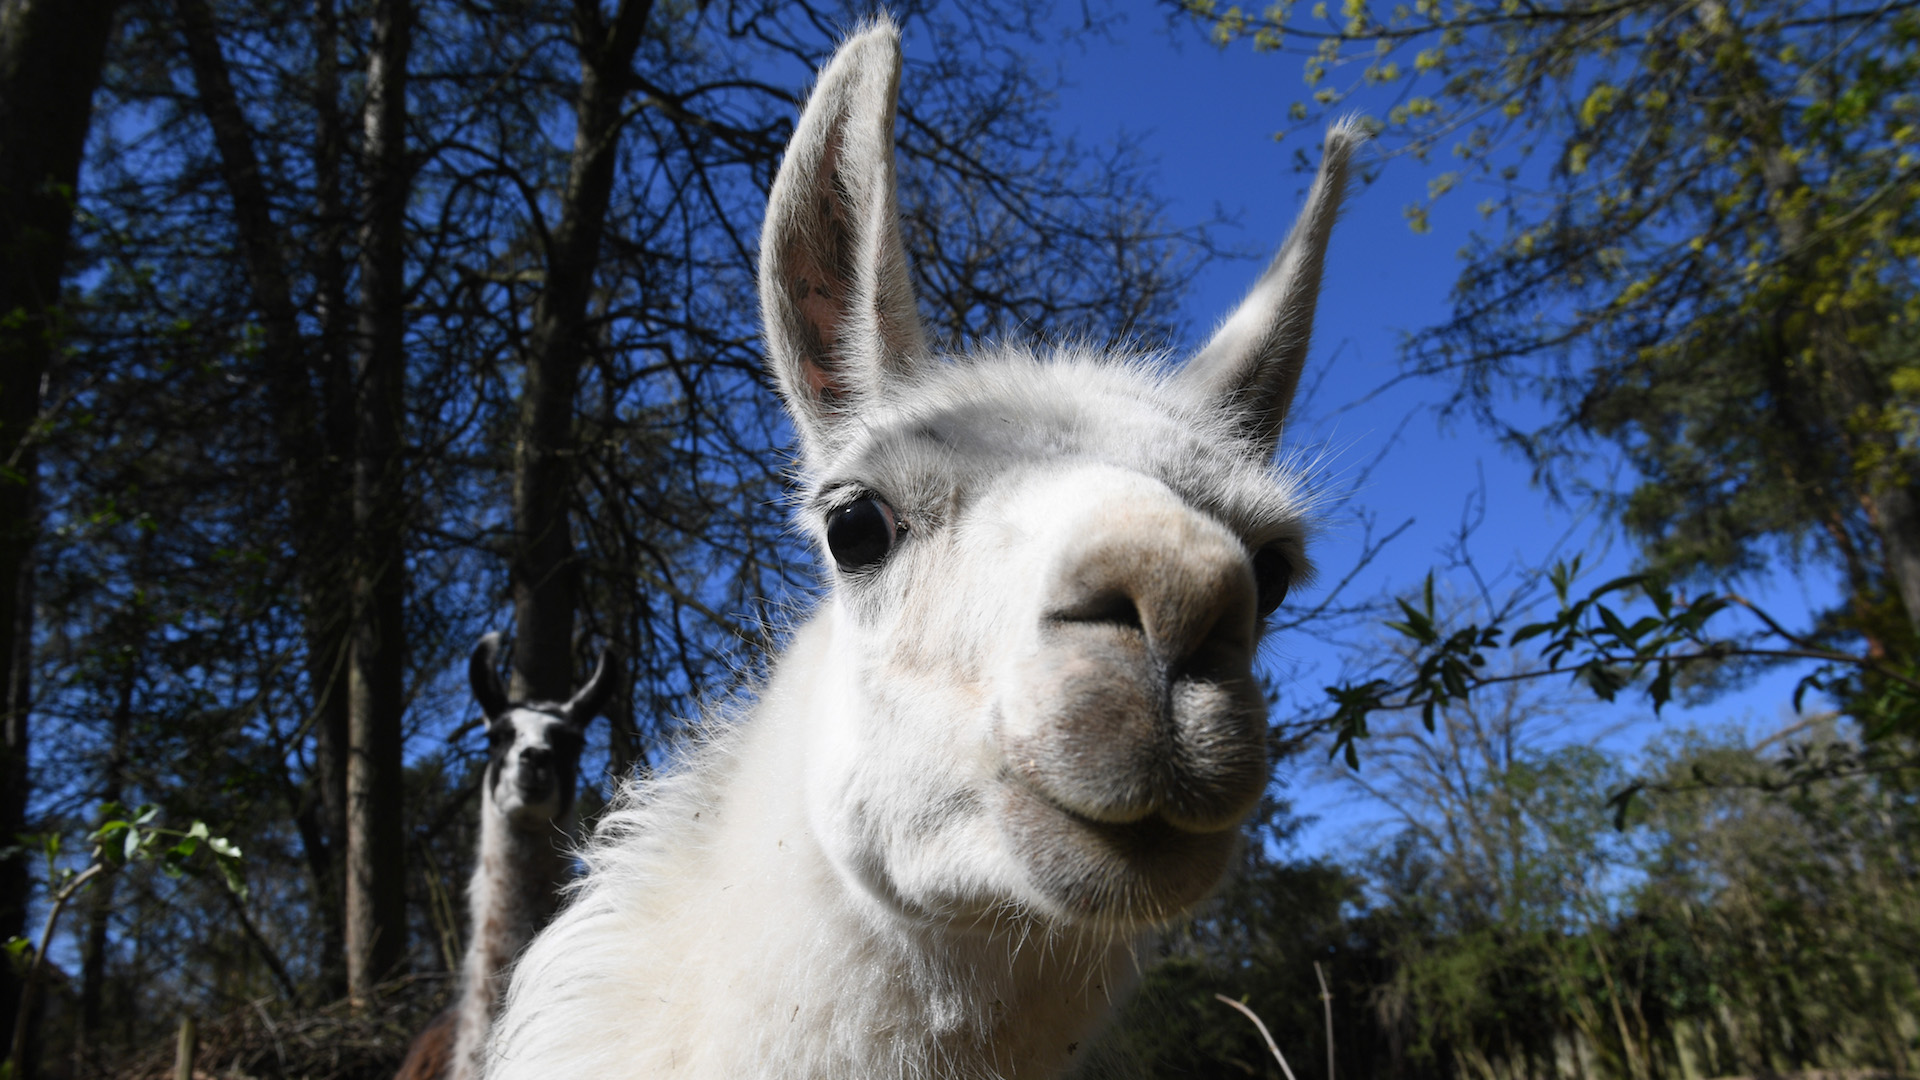 Scientists Suspect Llamas Could be the Answer in Search for Coronavirus Treatment